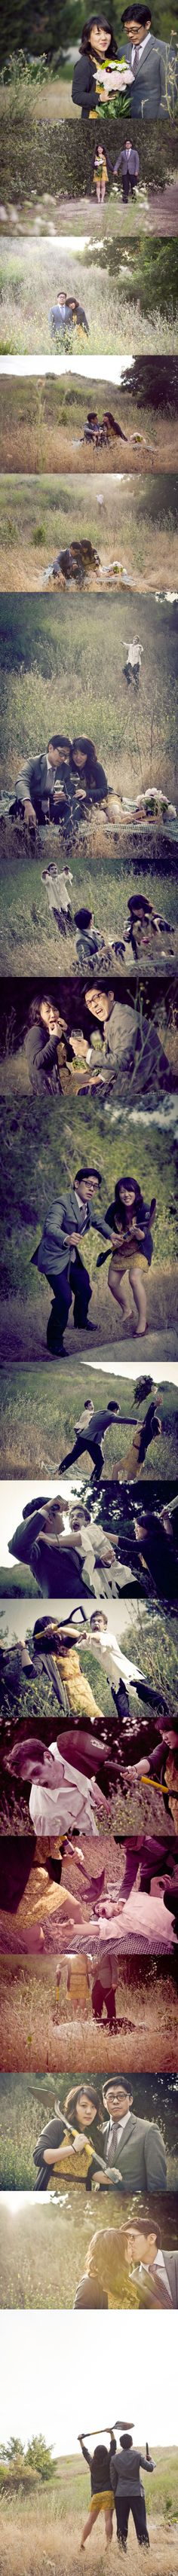 Best Engagement Photos Ever!